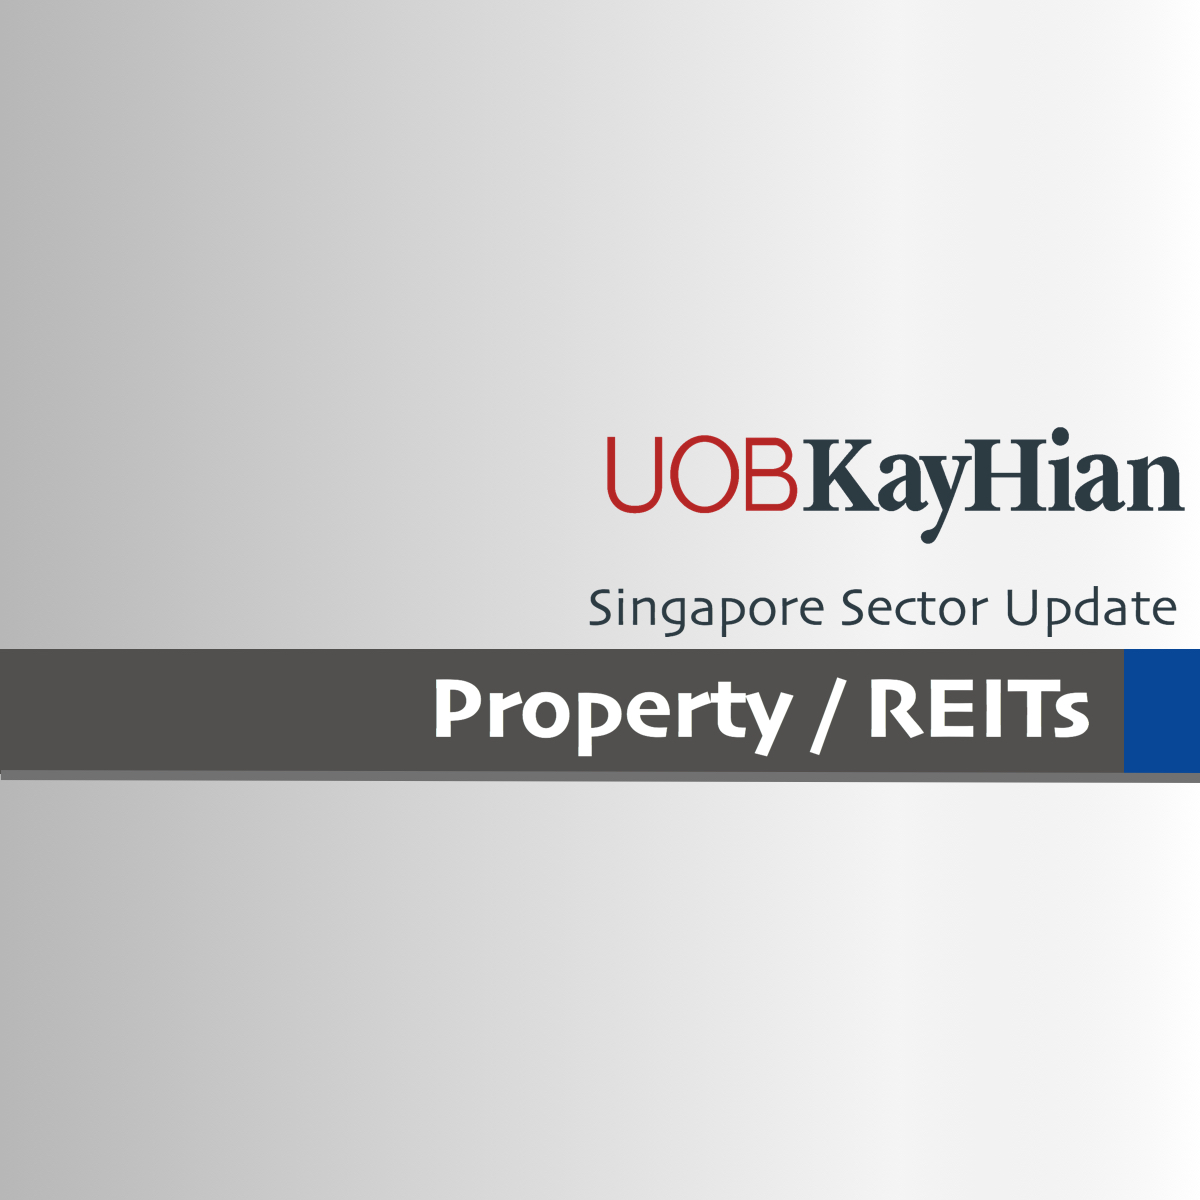 Singapore Property 2017 Strategy - UOB Kay Hian 2017-01-04: Silver Lining In Supply